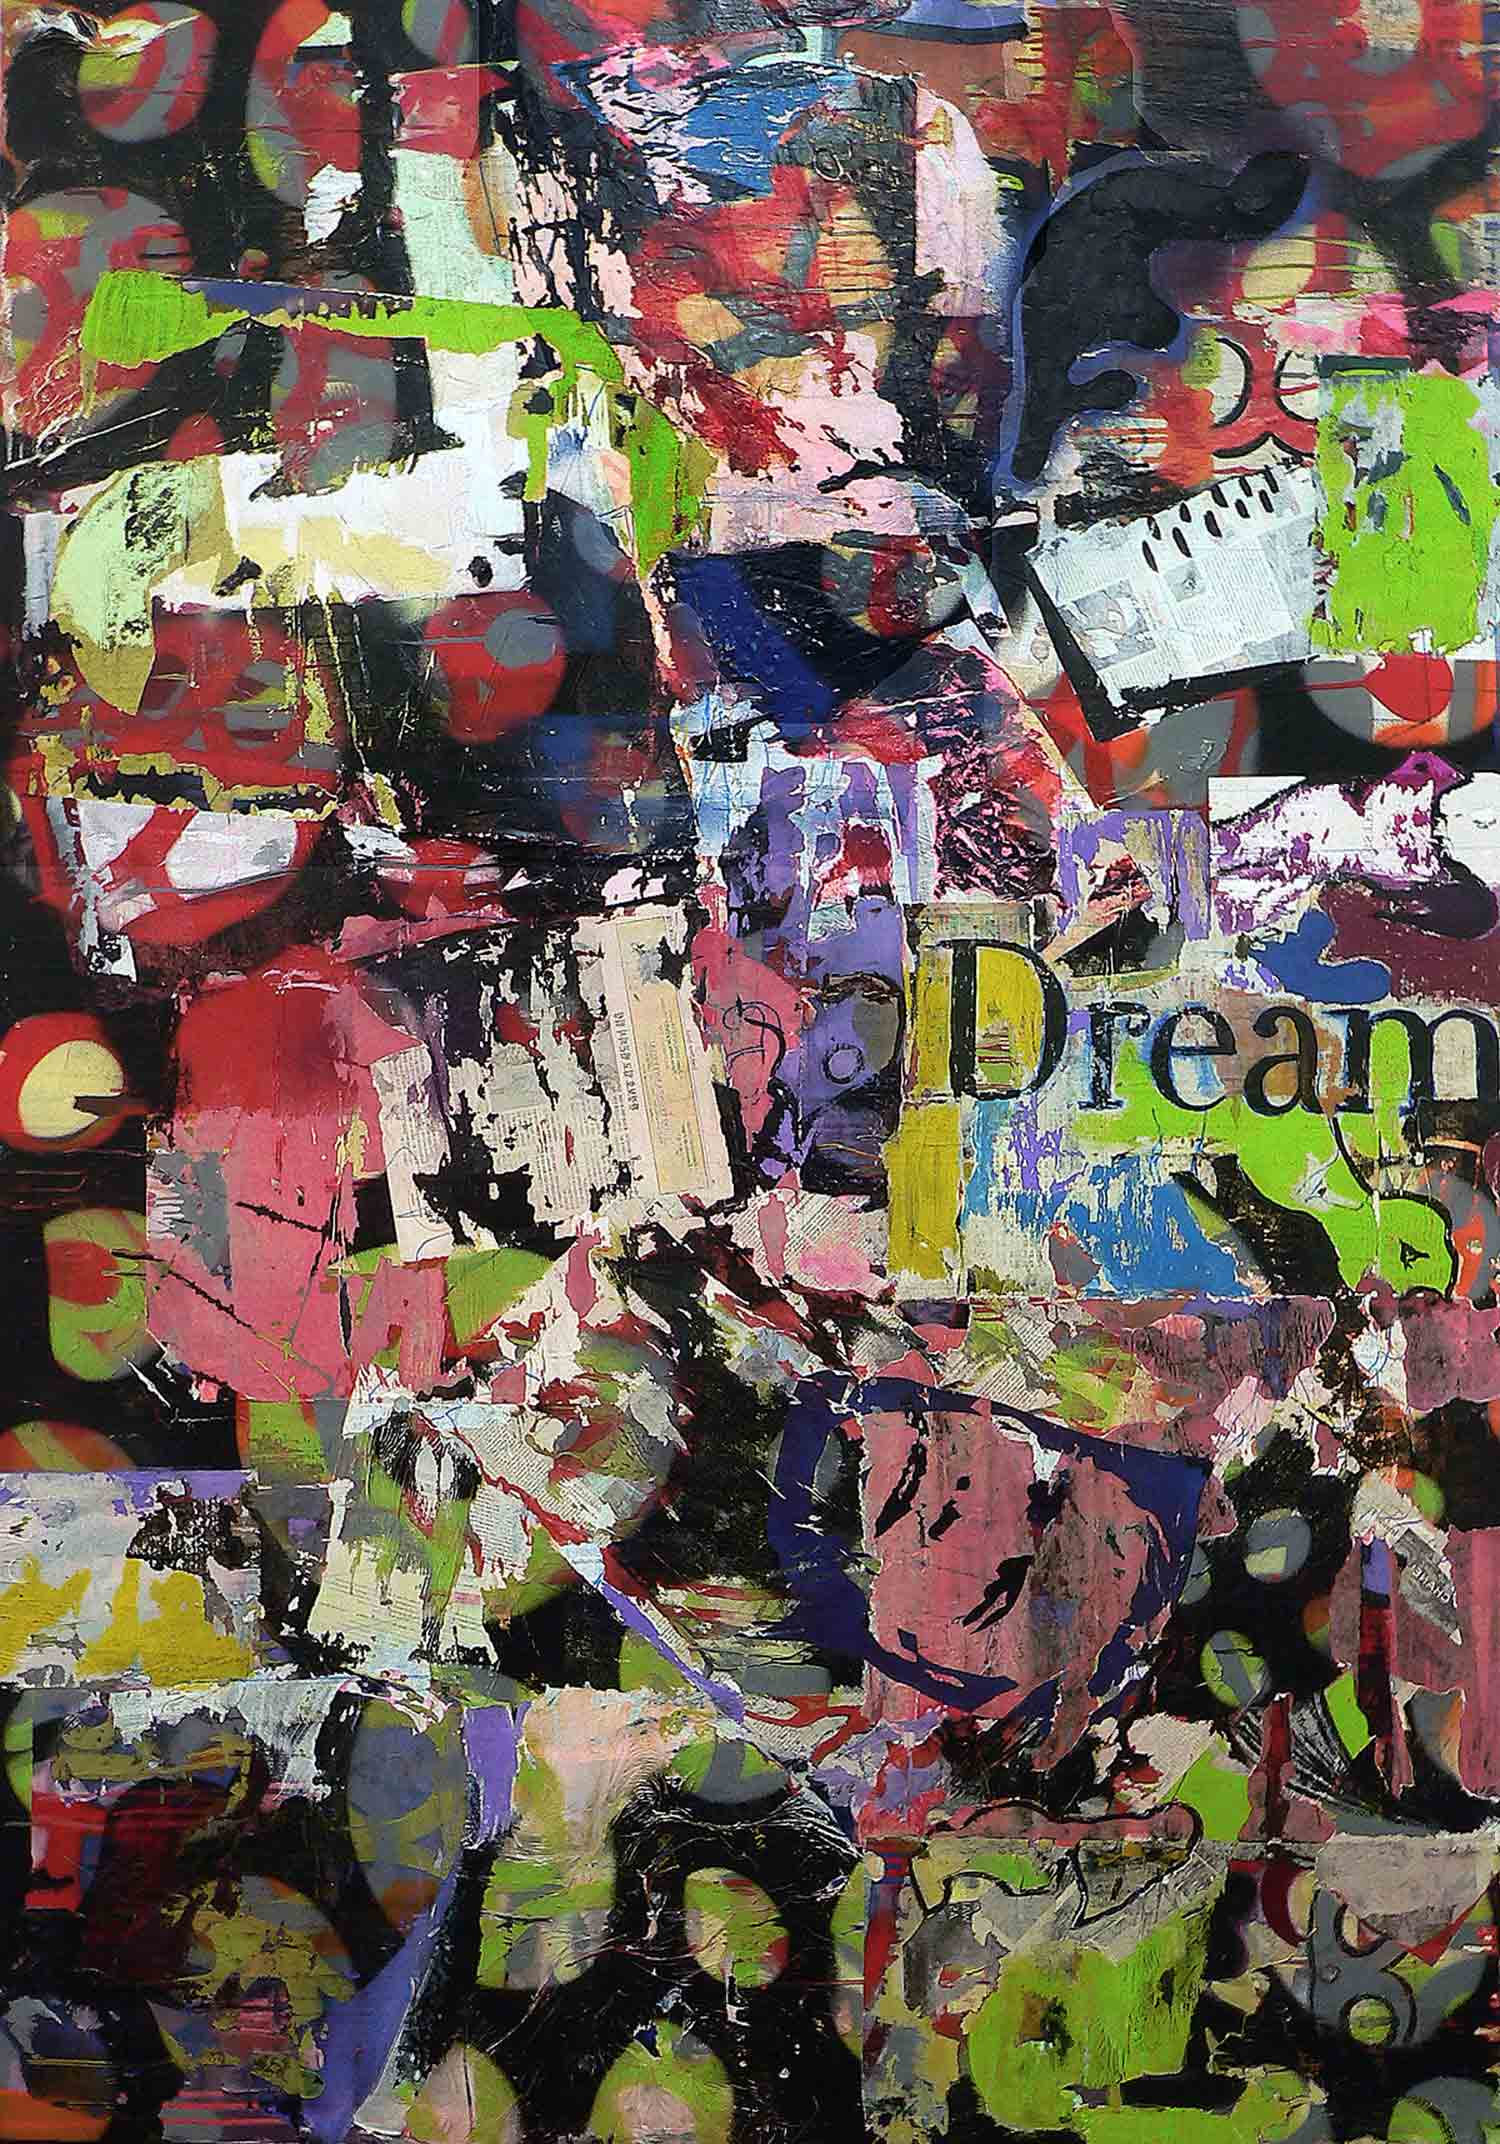 dream - 200 x 140 cm - acrylic, spray paint, markers and collage on canvas - 2010